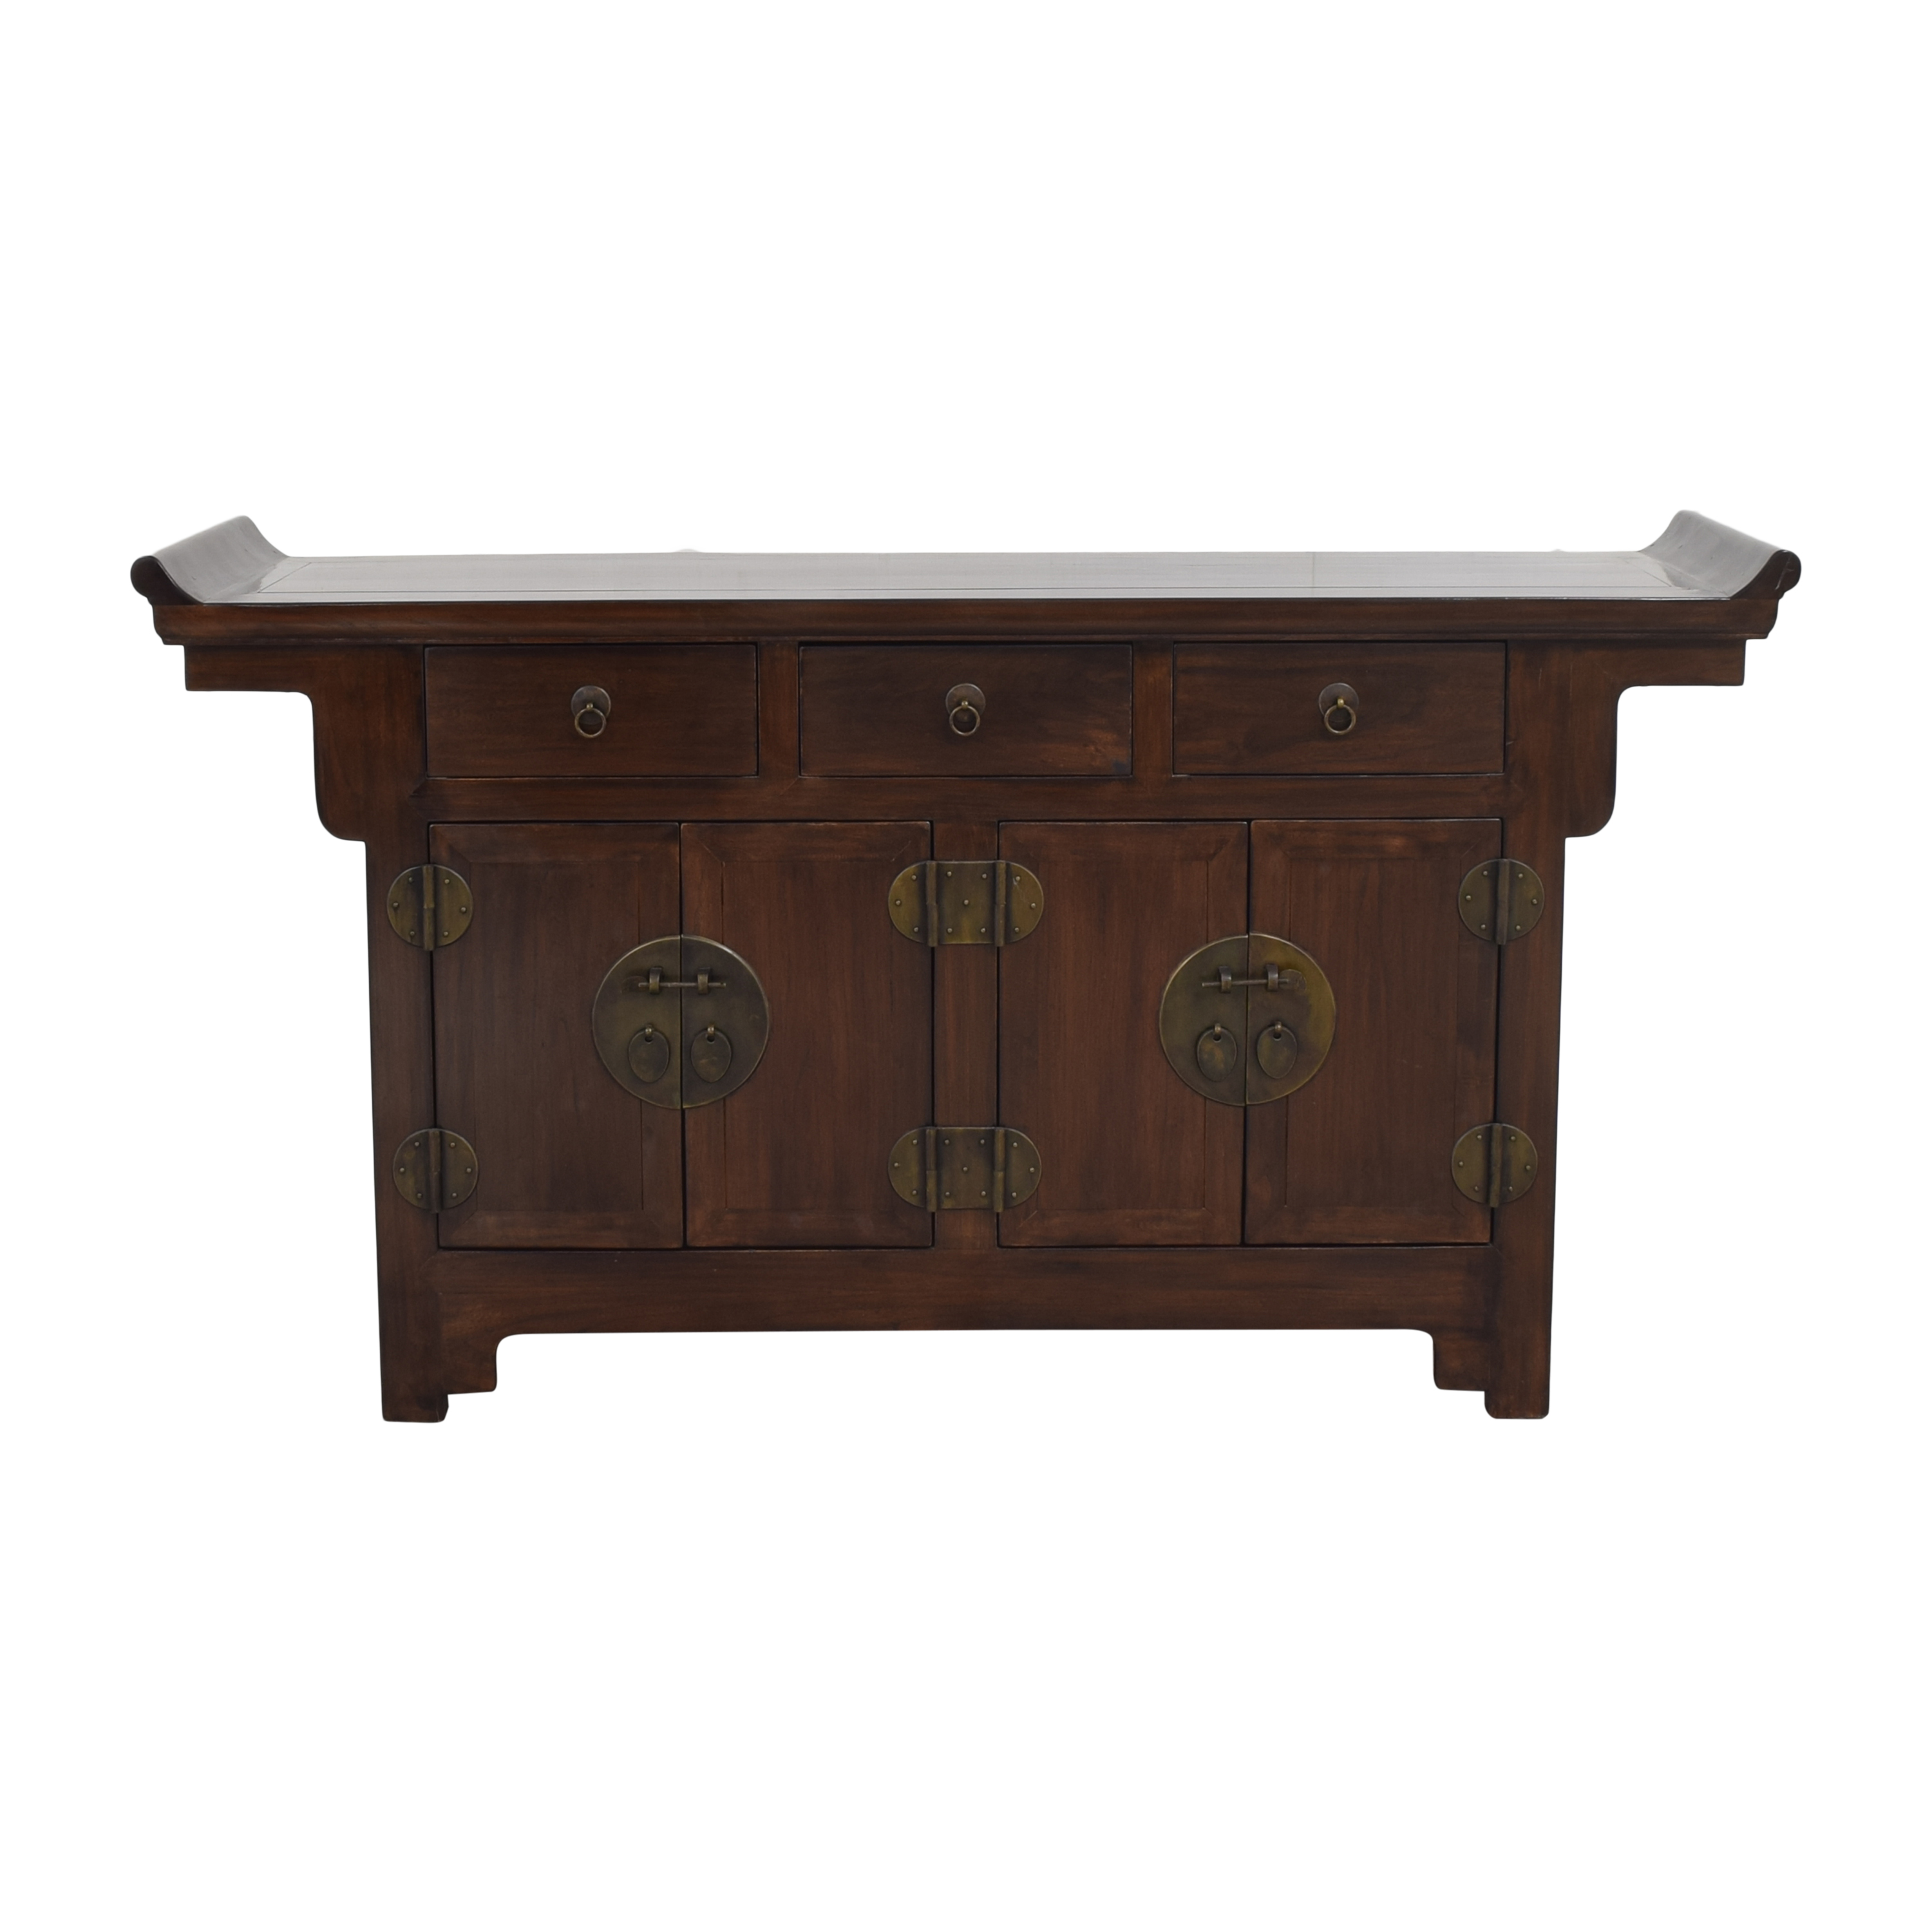 Chinoiserie Buffet Sideboard / Storage